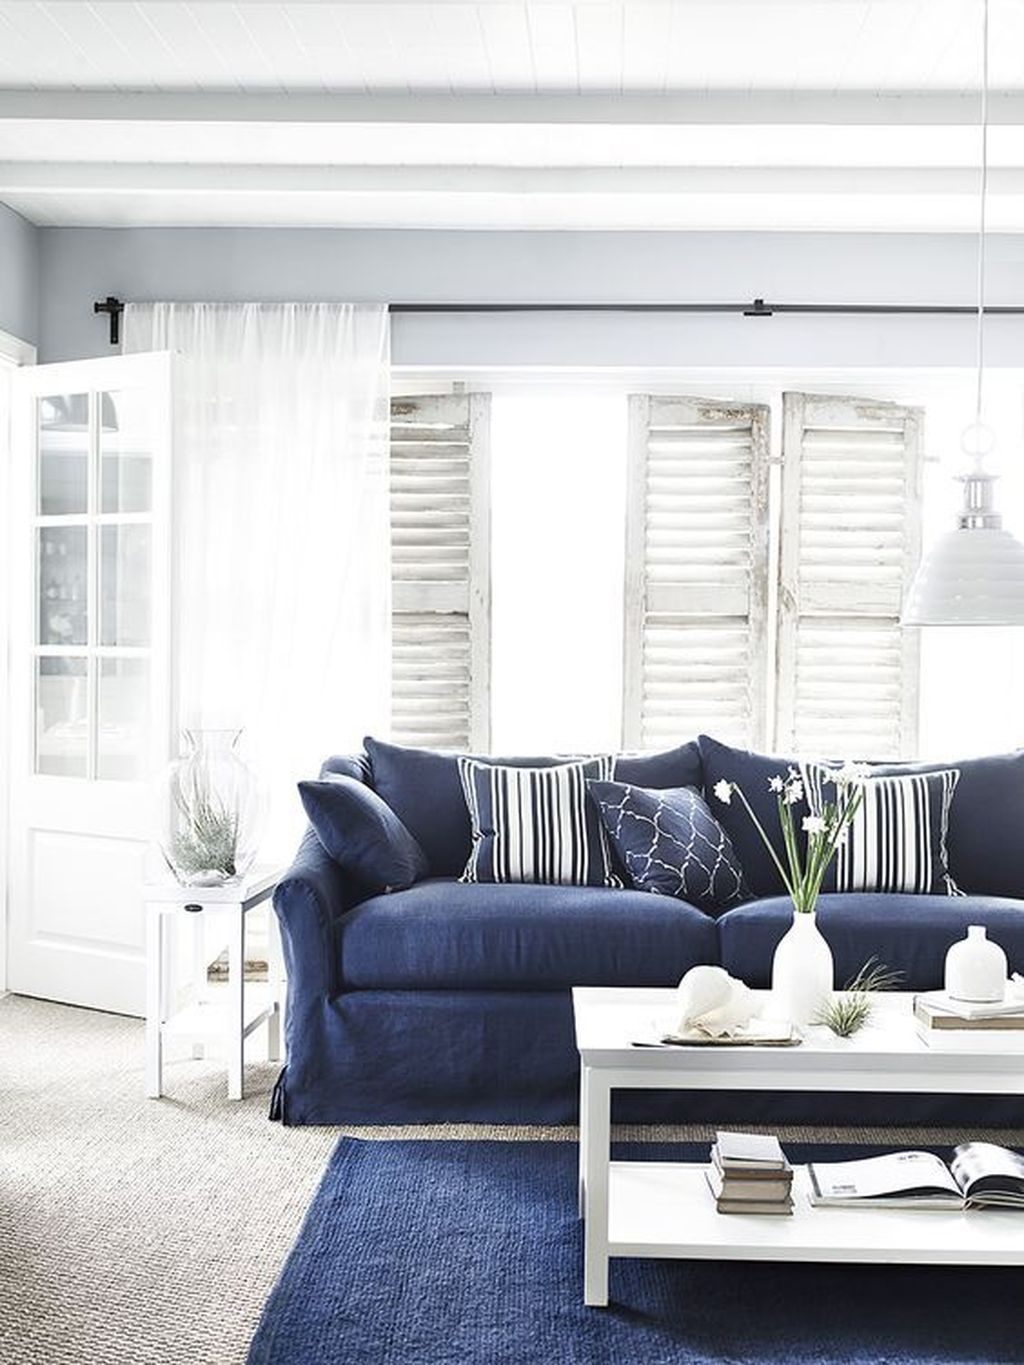 20 Cute And Chic Living Room Design For Your Home Trenduhome Blue Couch Living Room Navy Living Rooms Blue Couch Living